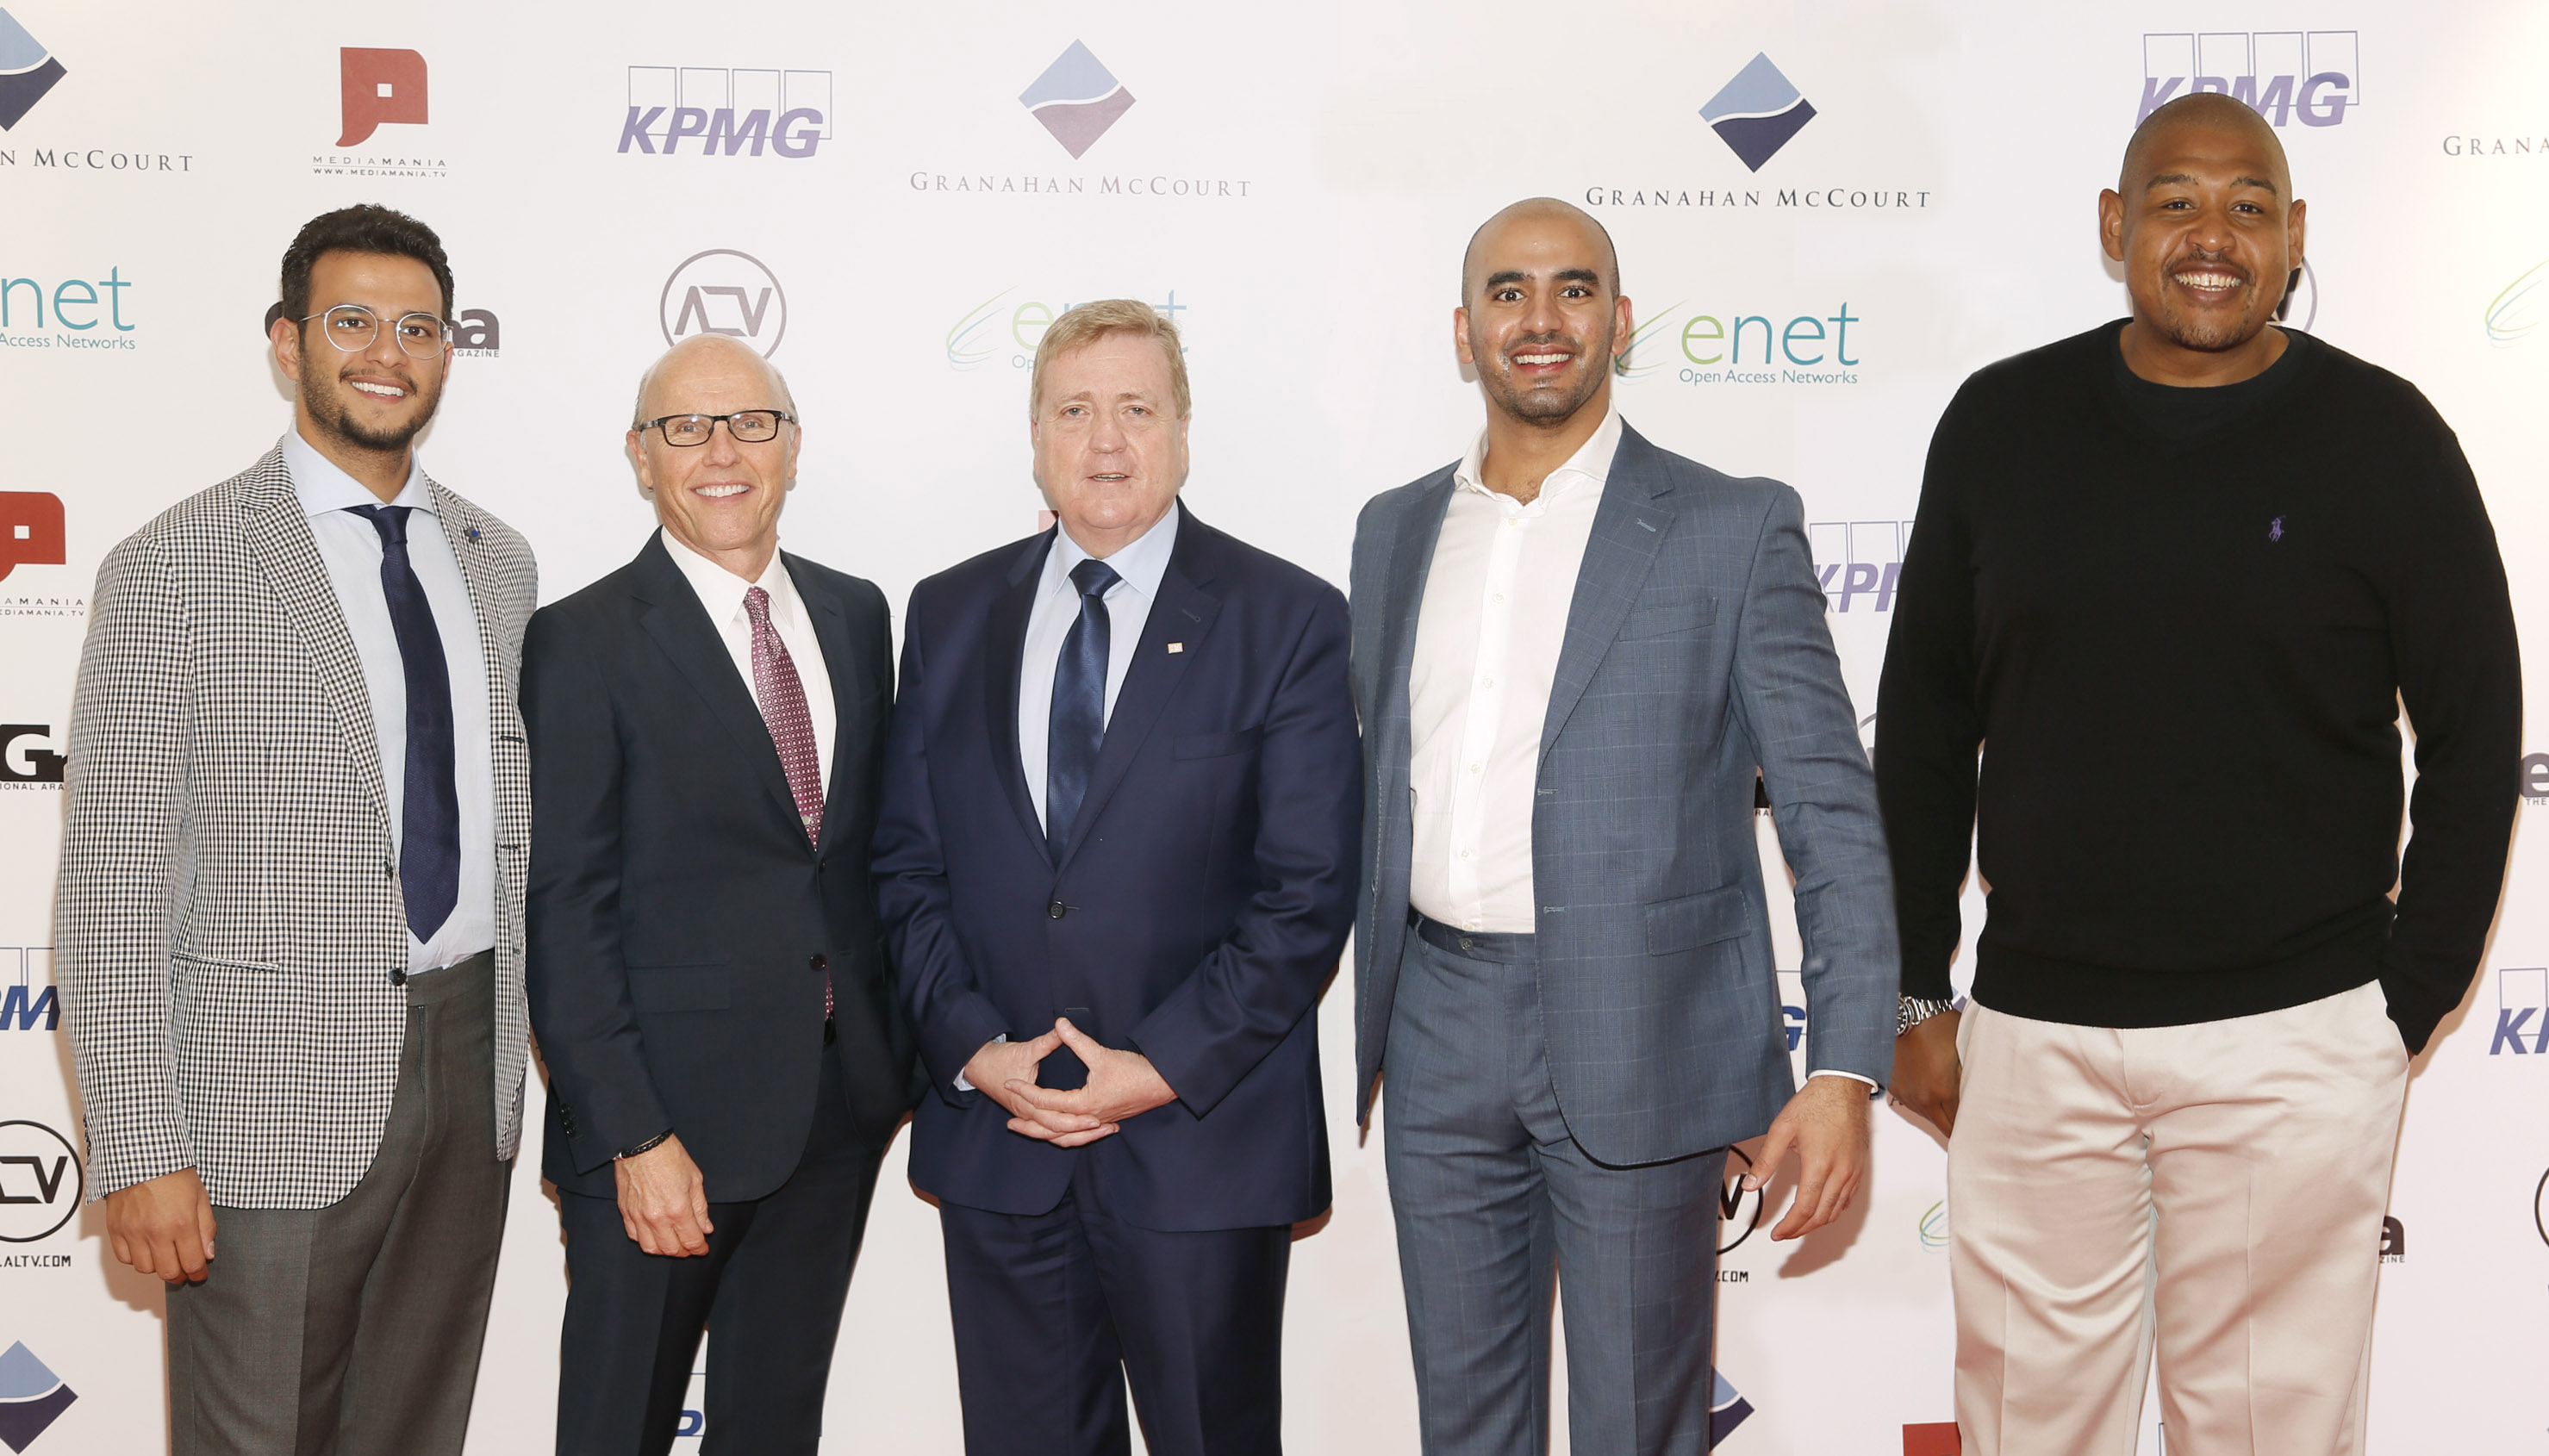 David McCourt chairman and CEO of Granahan McCourt Minister Pat Breen TD Prince Bandar Al Saud and Hollywood actor Omar Miller at the launch of ALTV